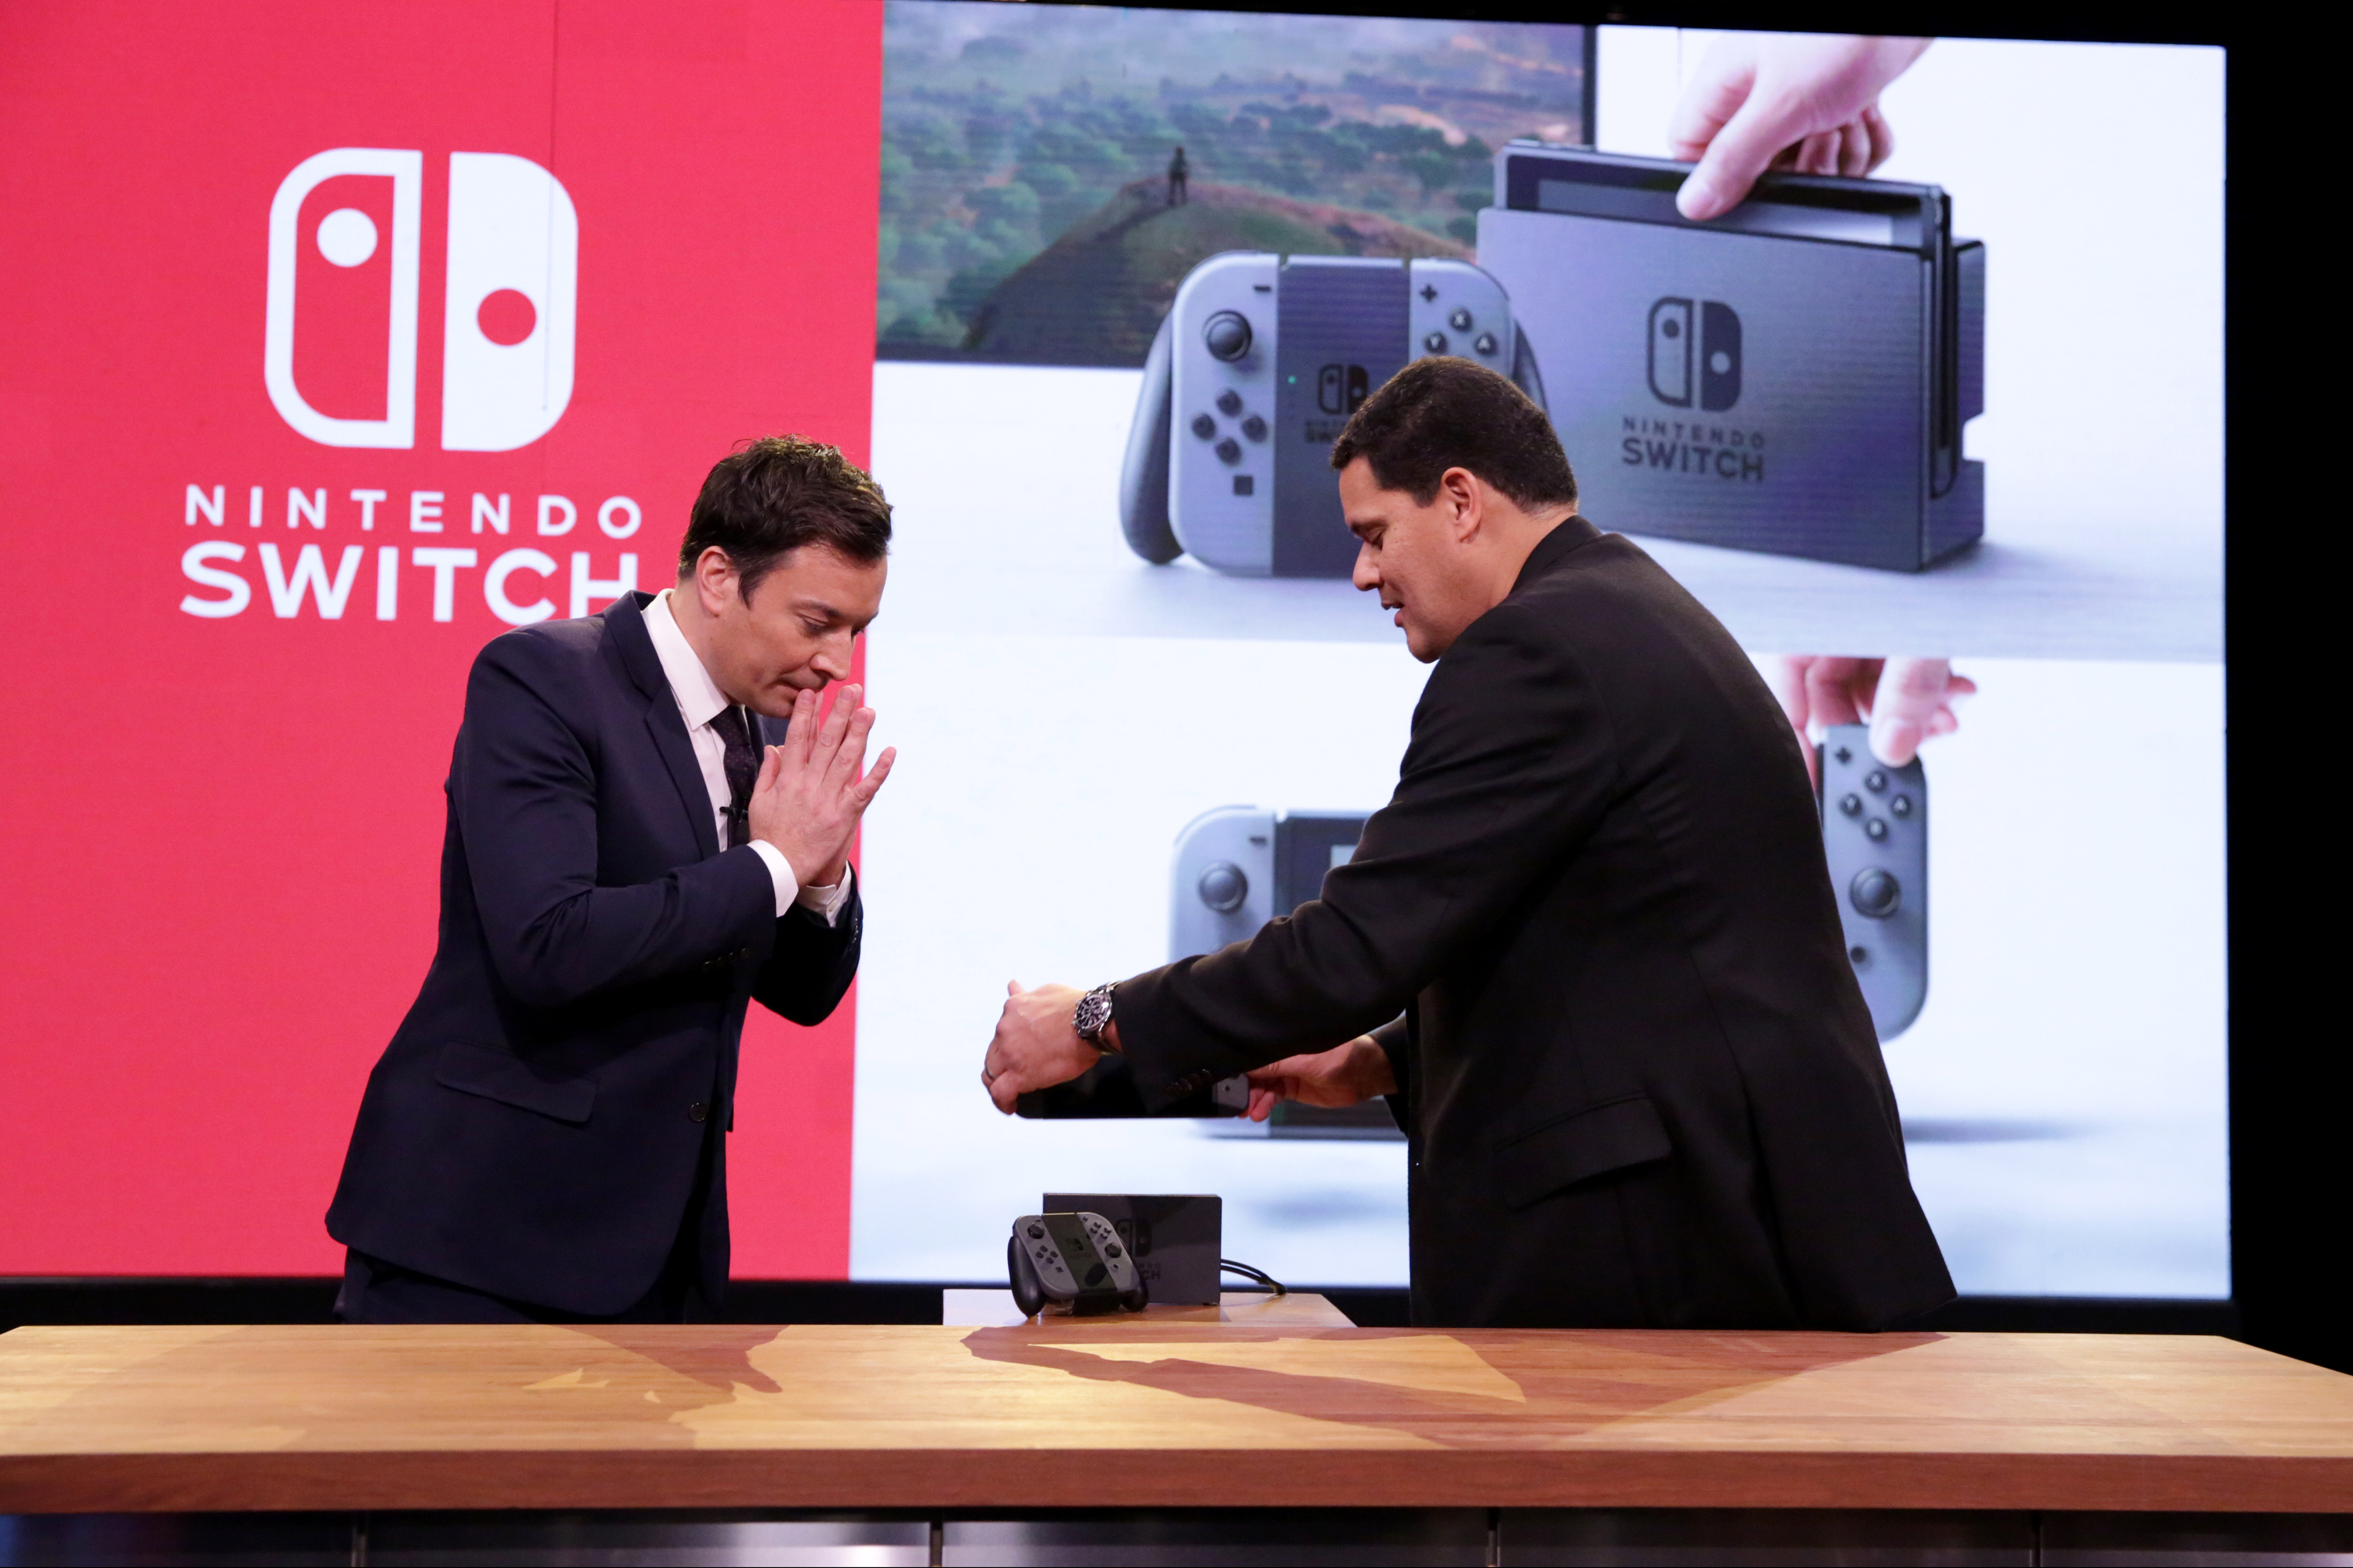 Jimmy Fallon and President of Nintendo America Reggie Fils-Aimé during a Nintendo Switch demonstration on December 07, 2016.